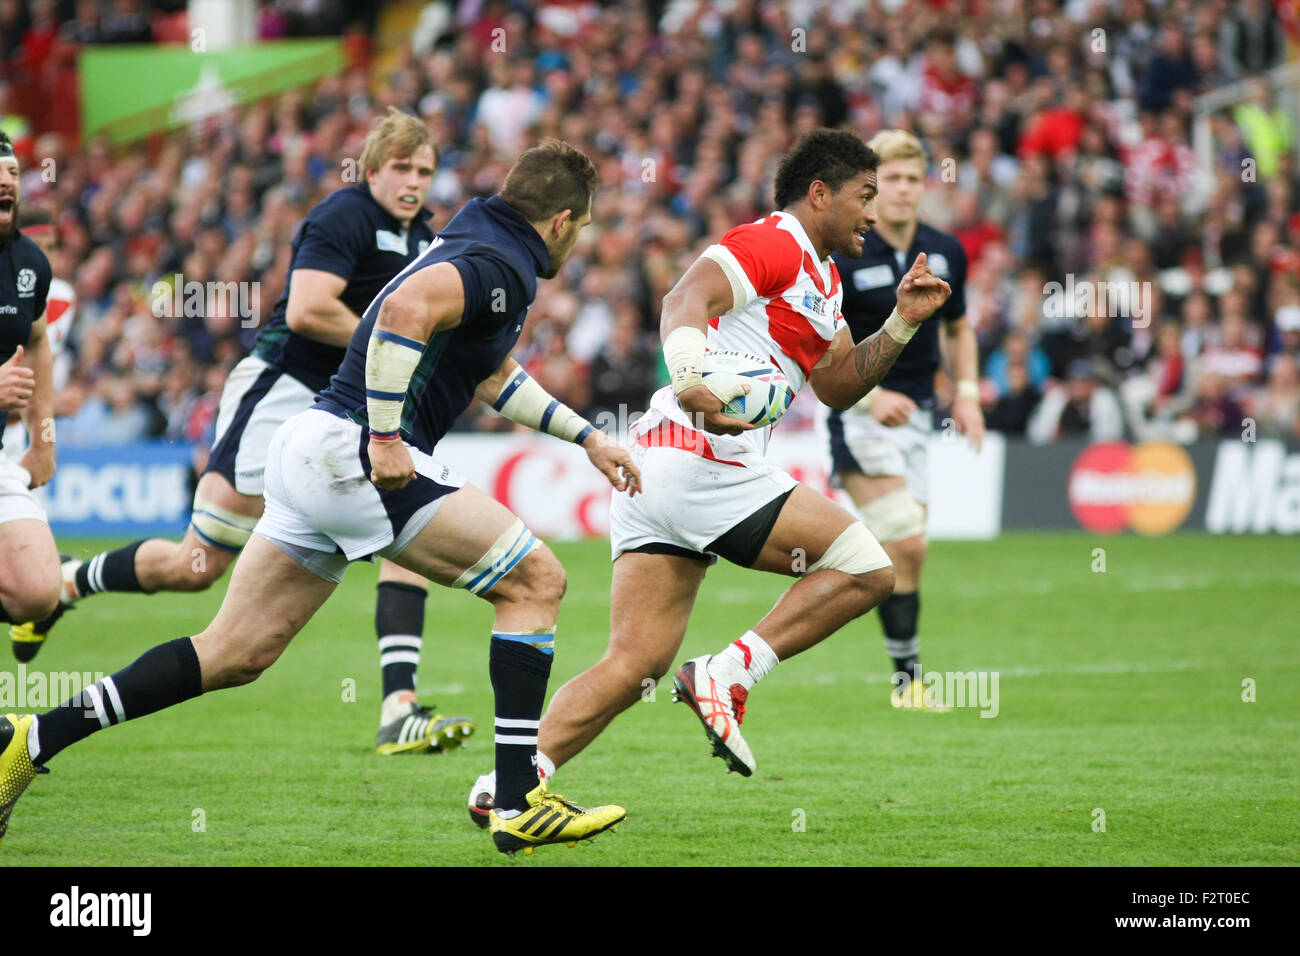 Gloucester, Royaume-Uni. 23 Septembre, 2015. Coupe du Monde de Rugby 2015 - L'Ecosse contre le Japon, jouée Photo Stock